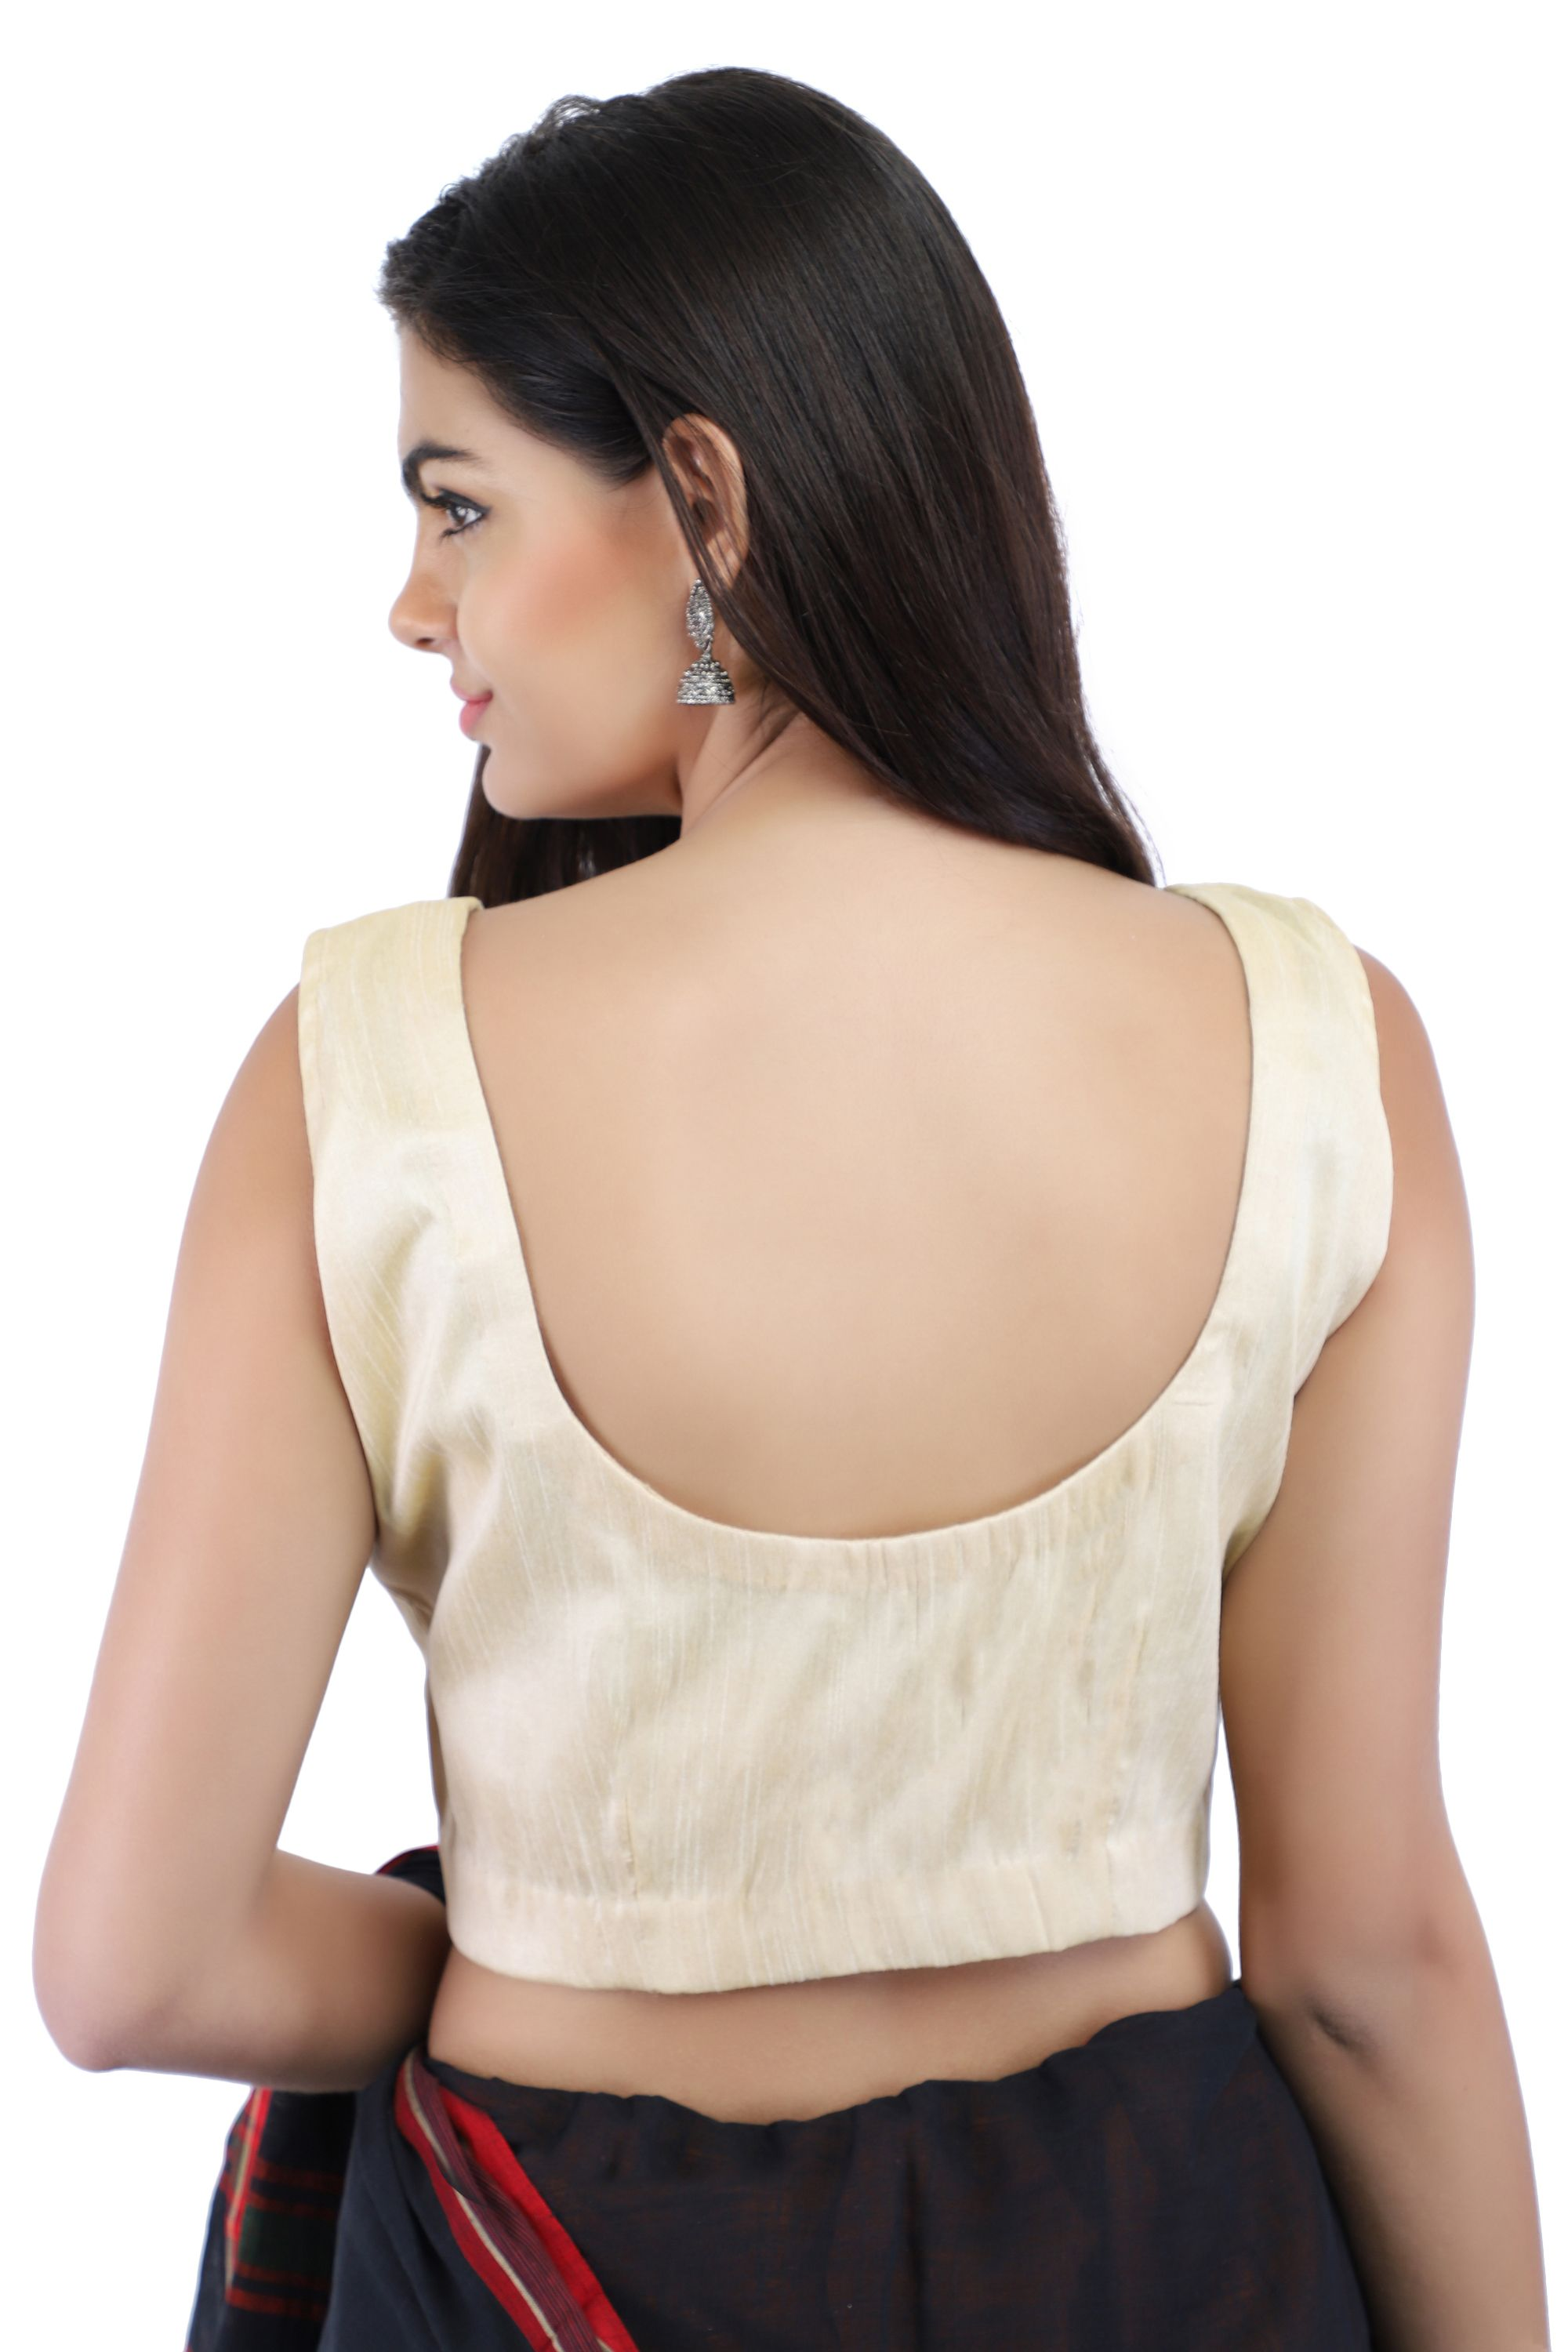 Dupion Silk Non-Padded Blouse in Beige With hook Closure on Front 2